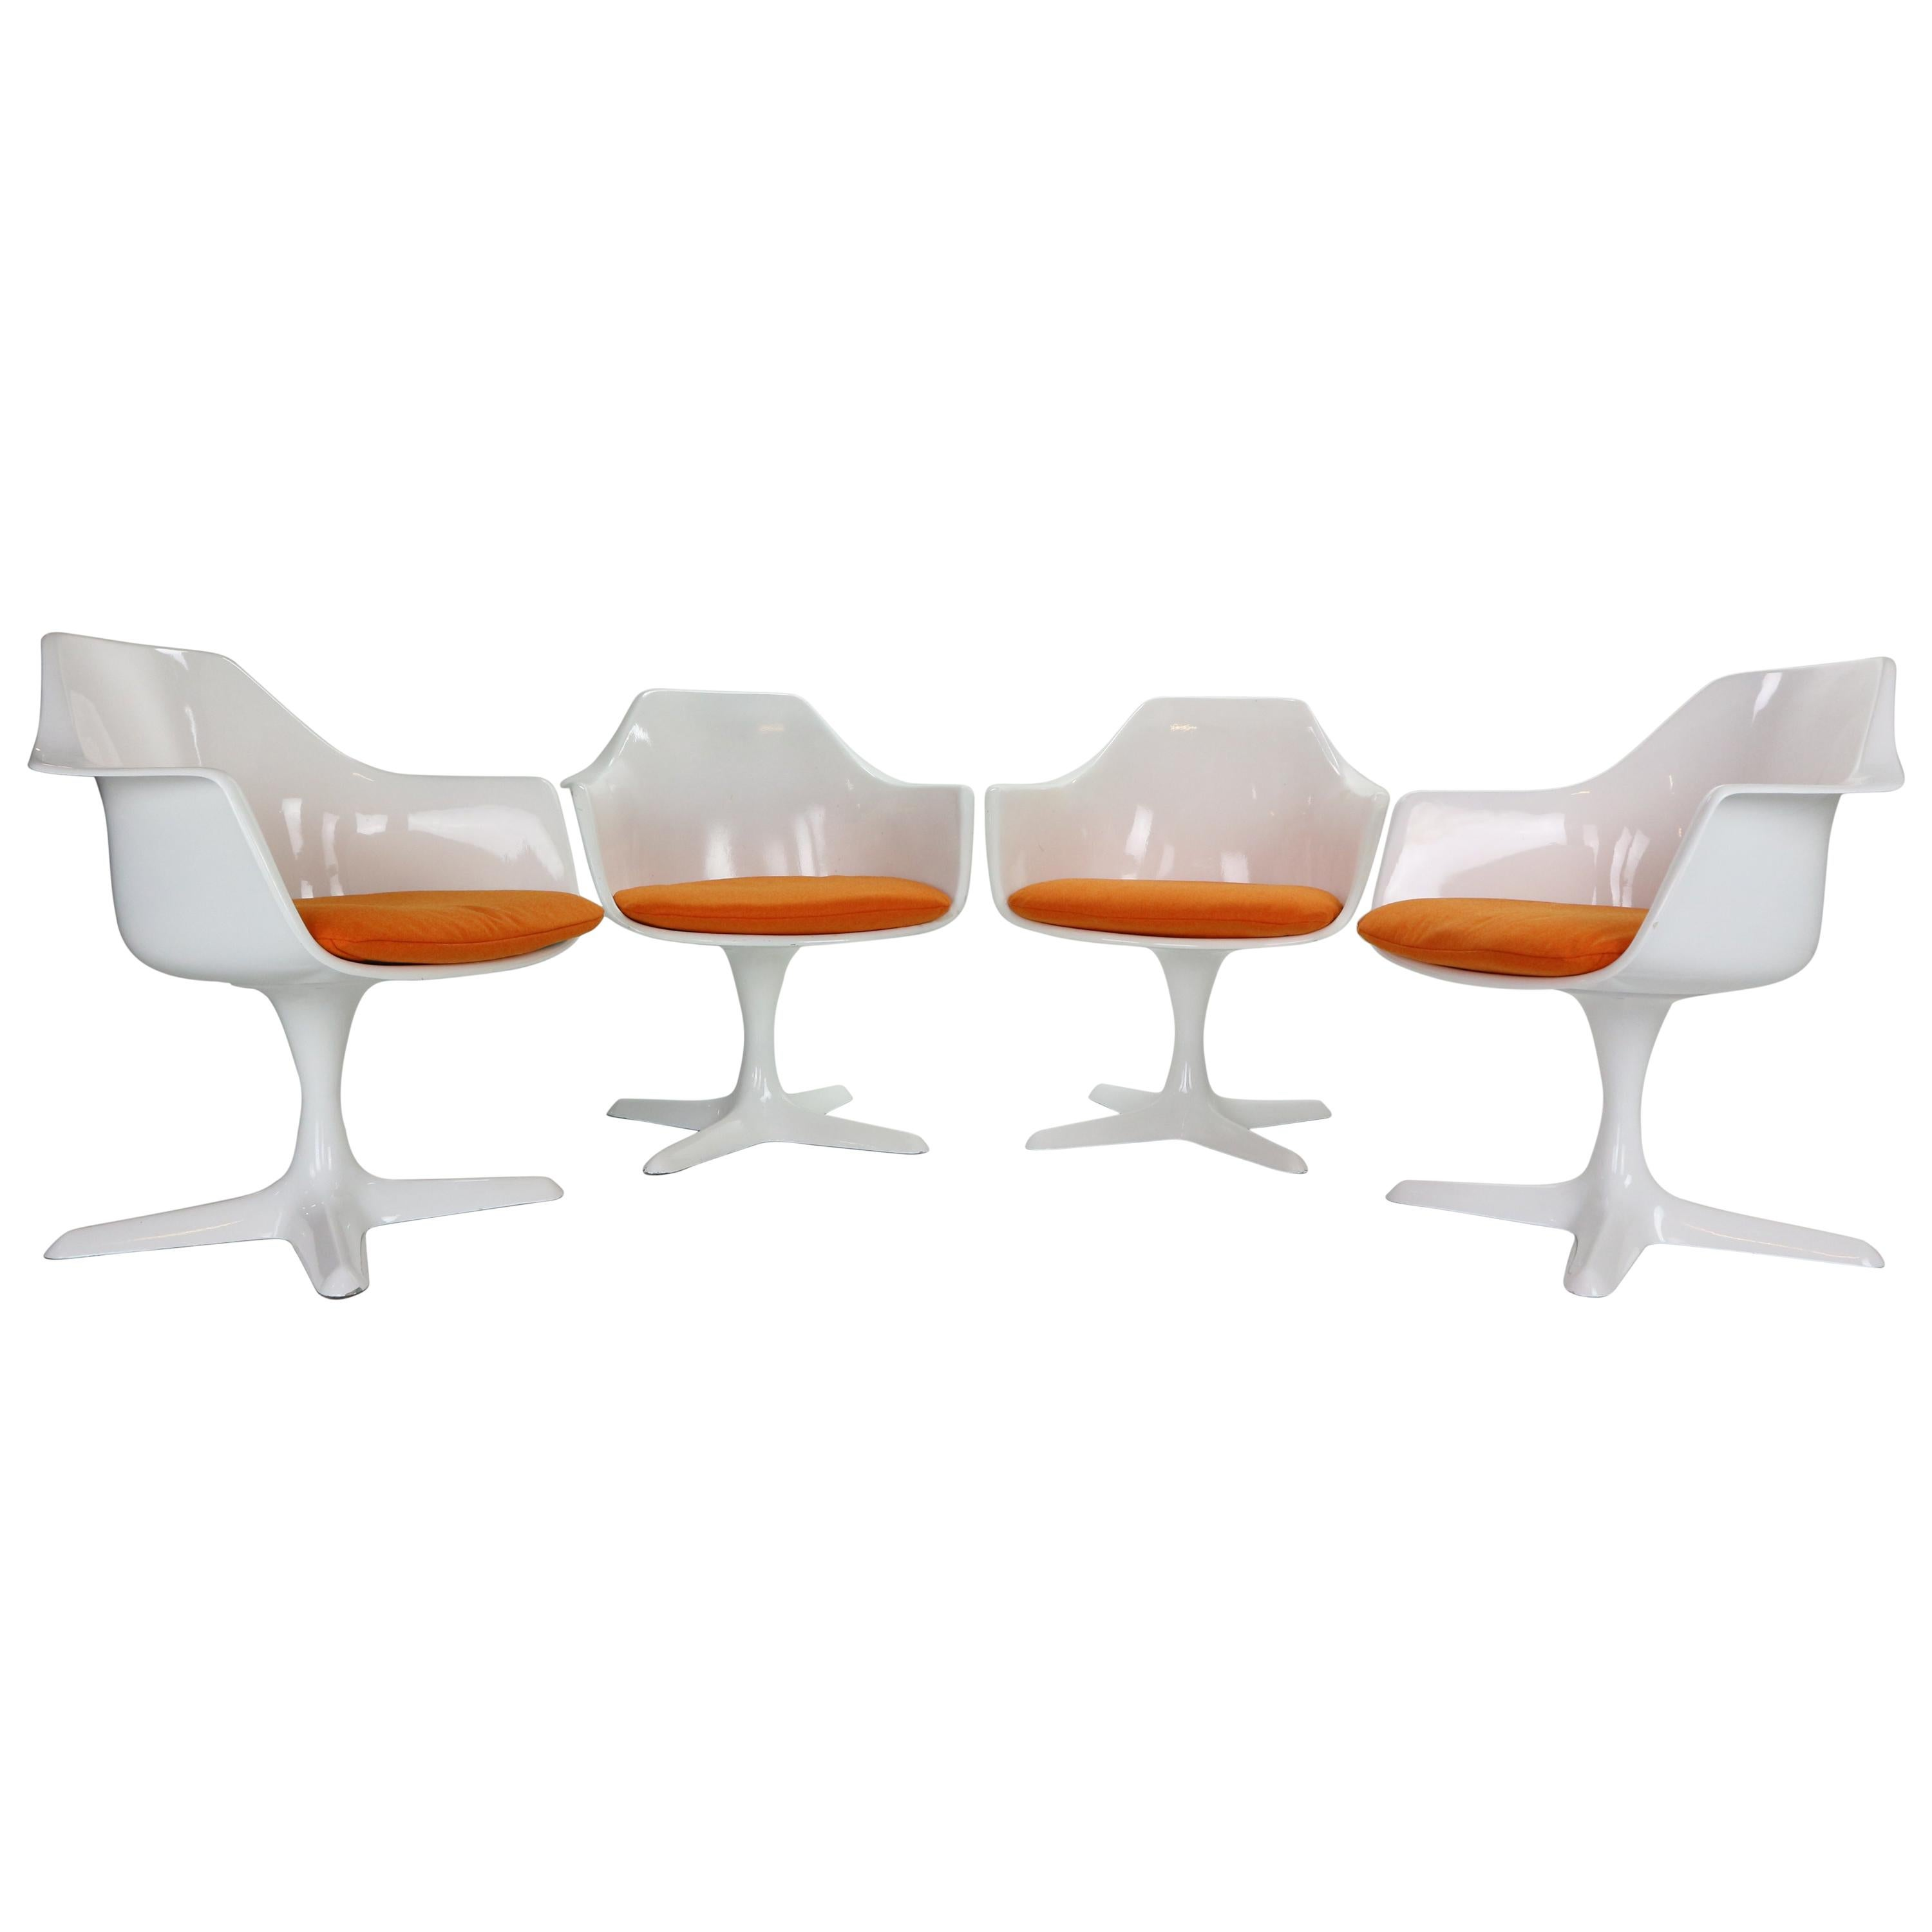 Maurice Burke Set of 4 Lounge Chairs Model No. 116 for Arkana, Space Age 1960's